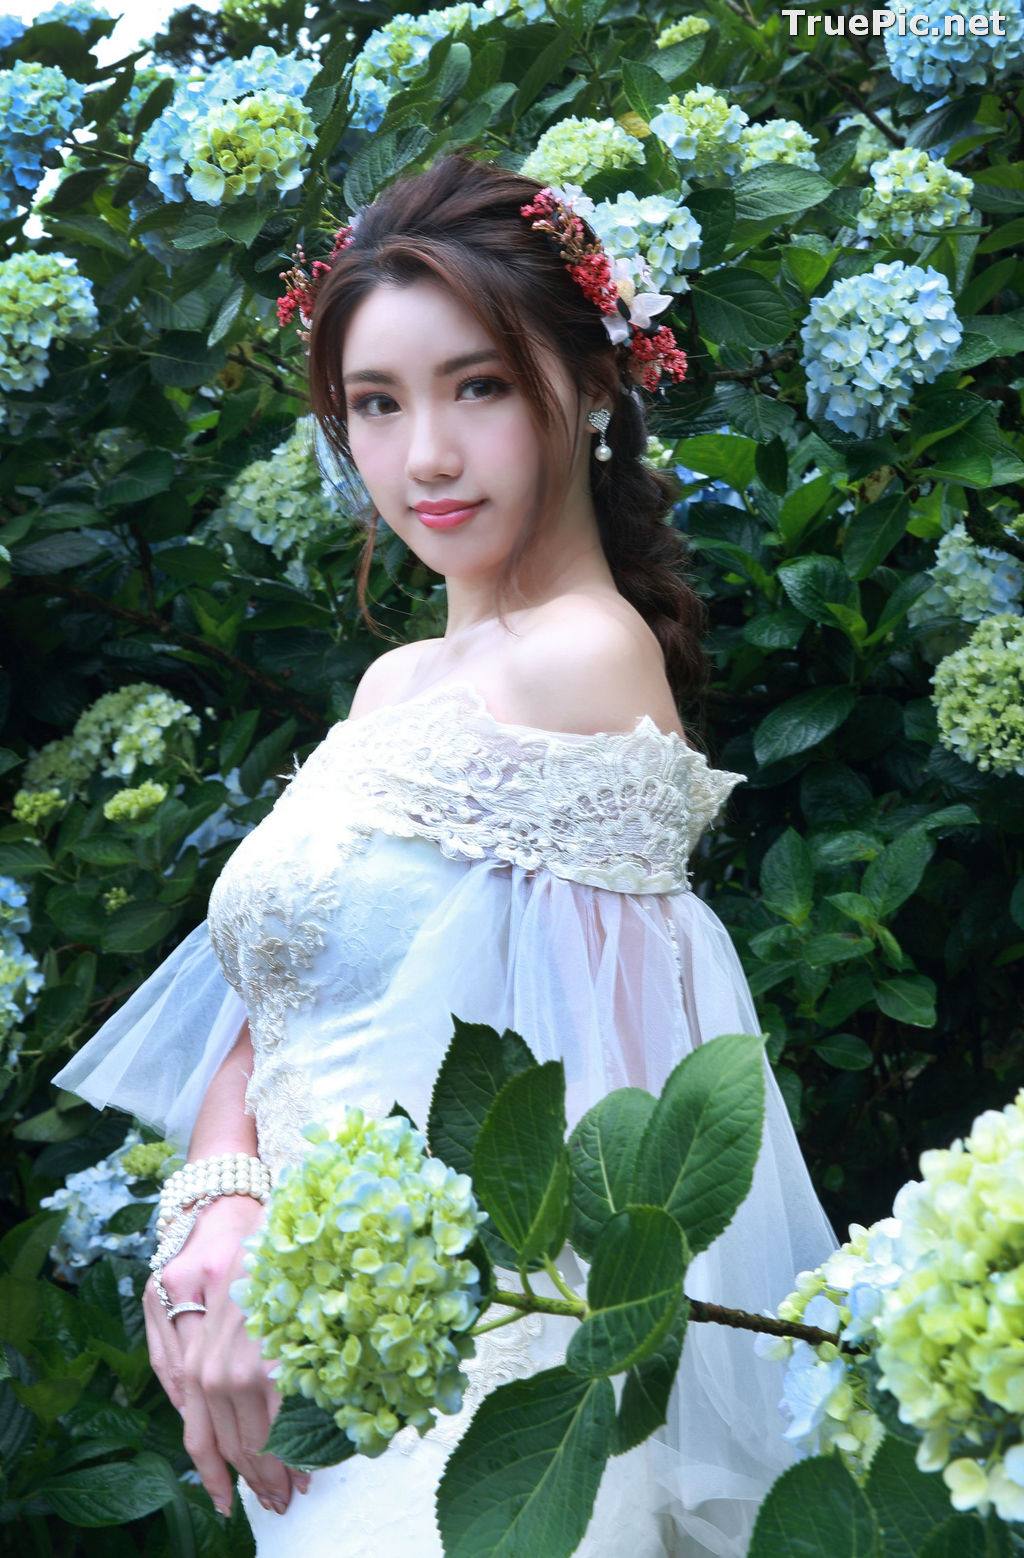 Image Taiwanese Model - 張倫甄 - Beautiful Bride and Hydrangea Flowers - TruePic.net - Picture-5